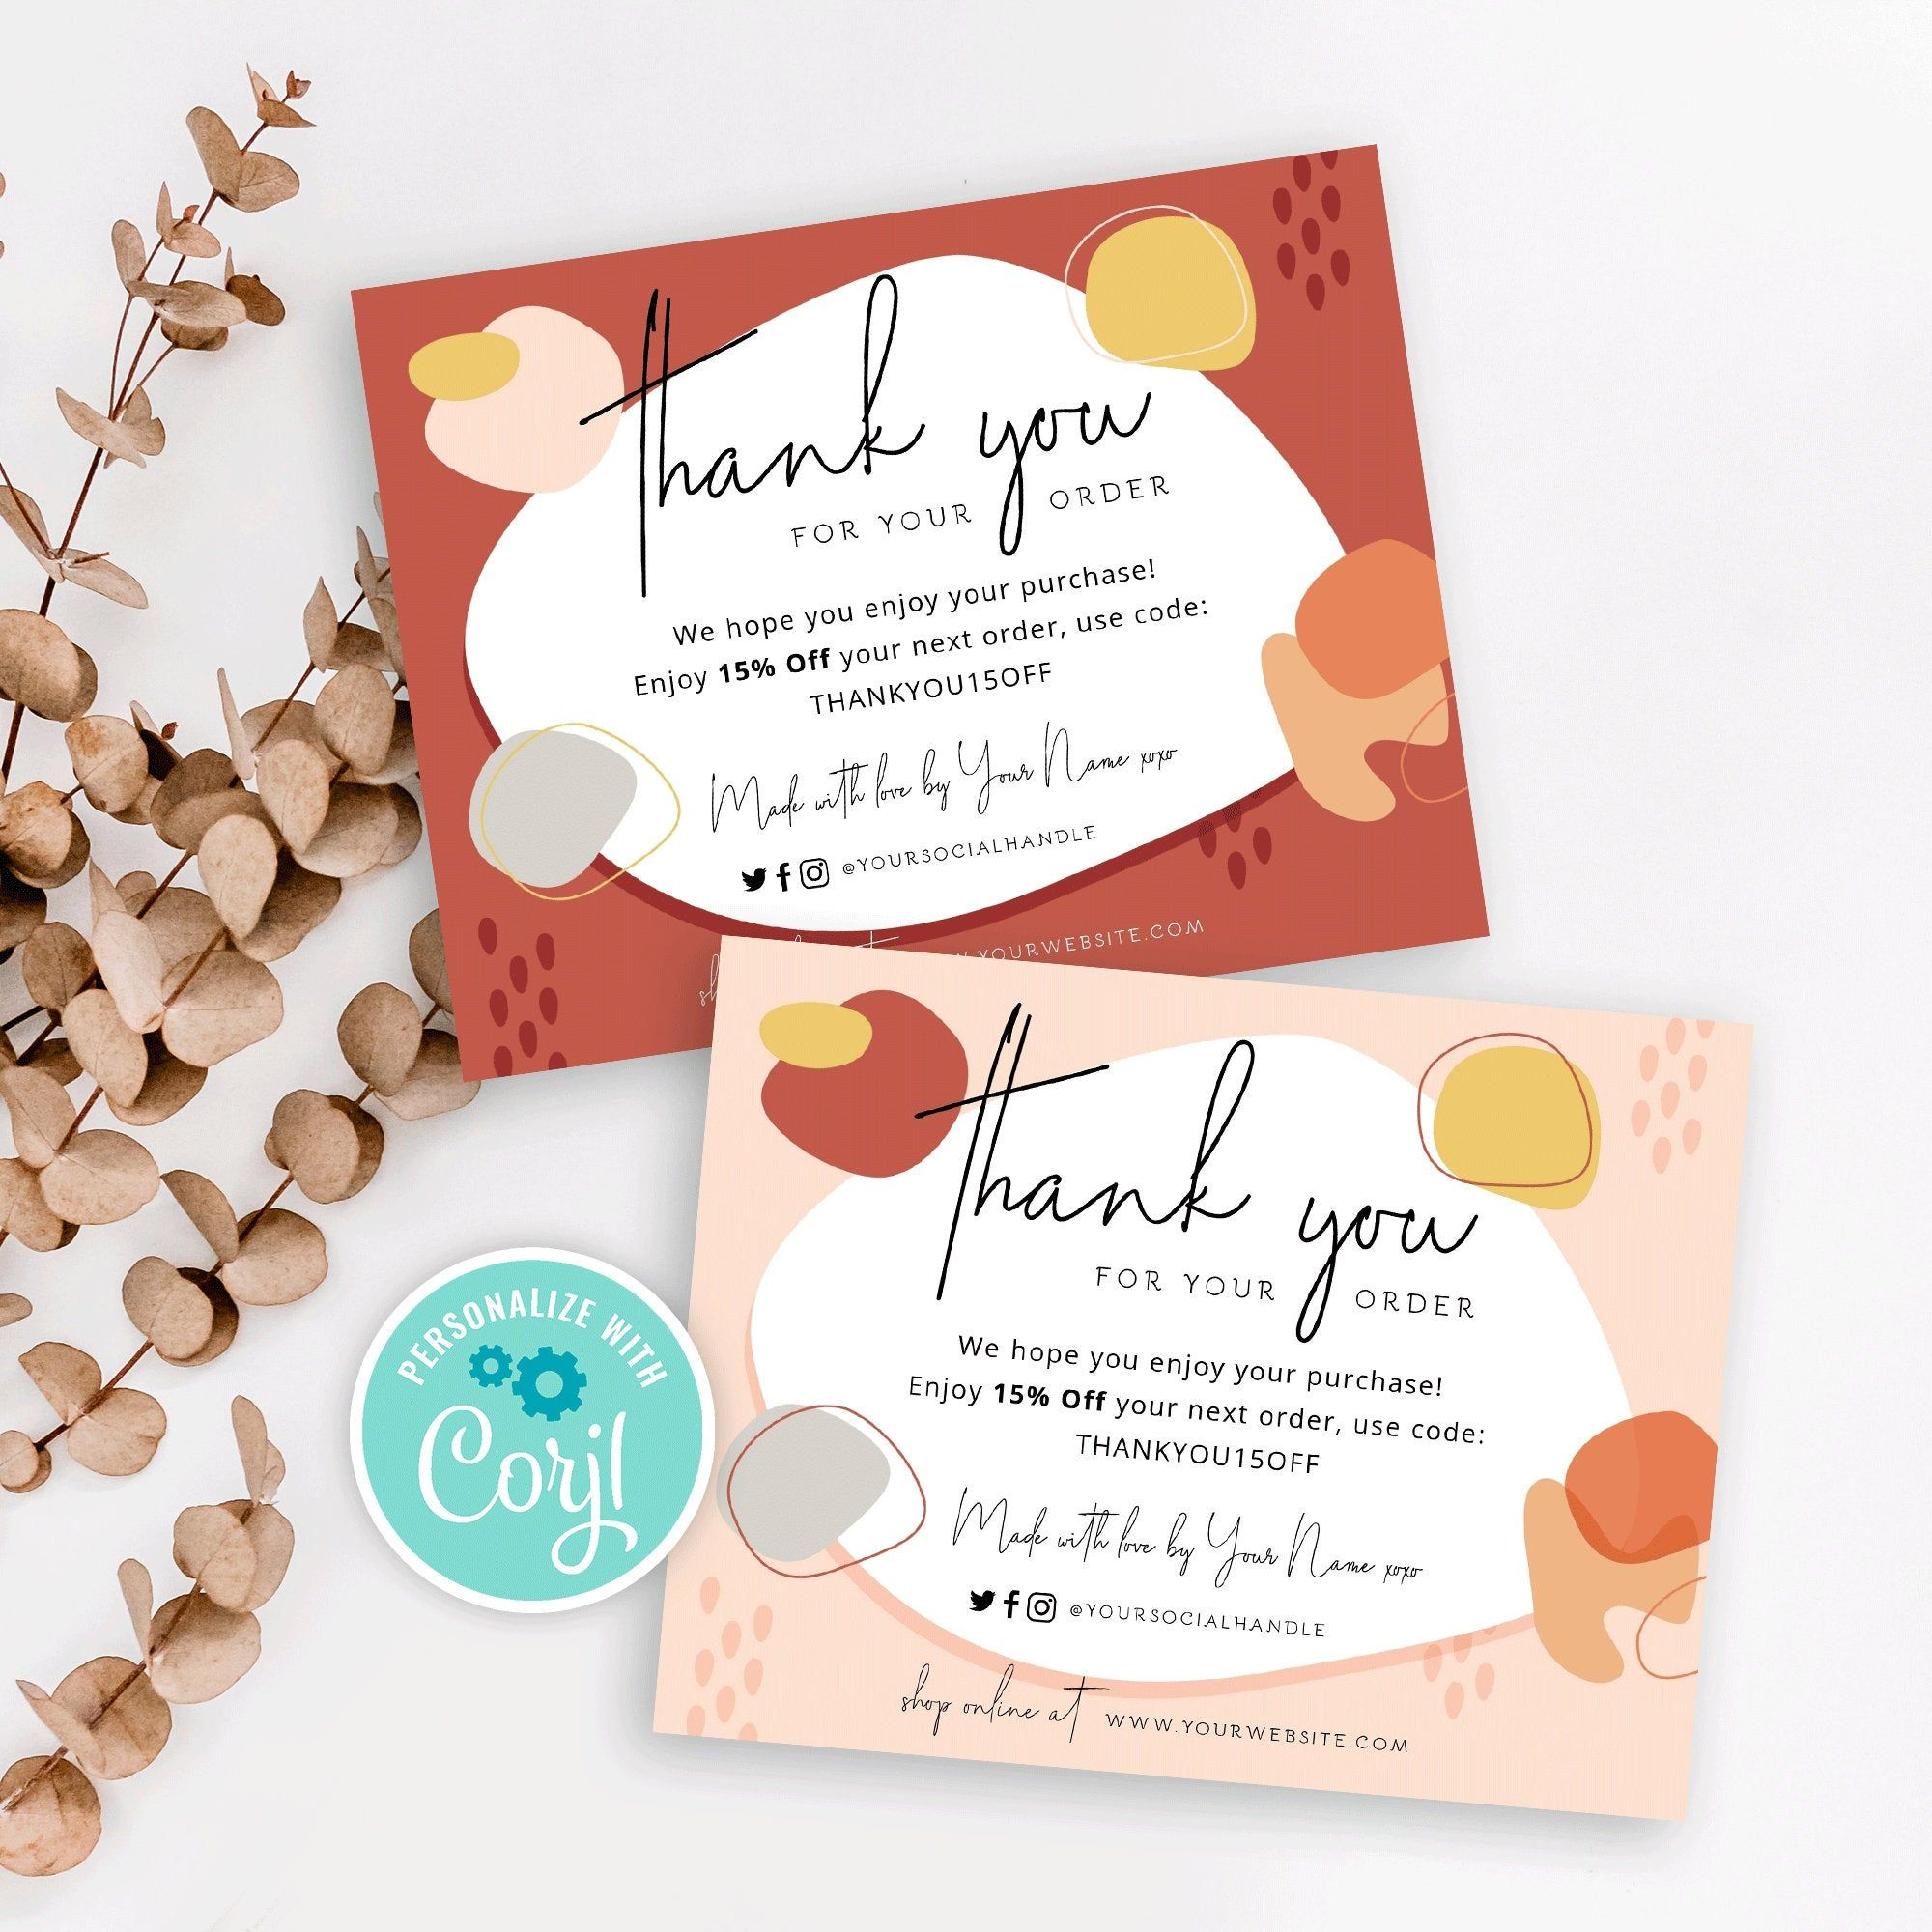 Thank You For Order Template Business Editable Thank You Card Etsy Thank You Card Design Business Thank You Cards Thank You Card Template